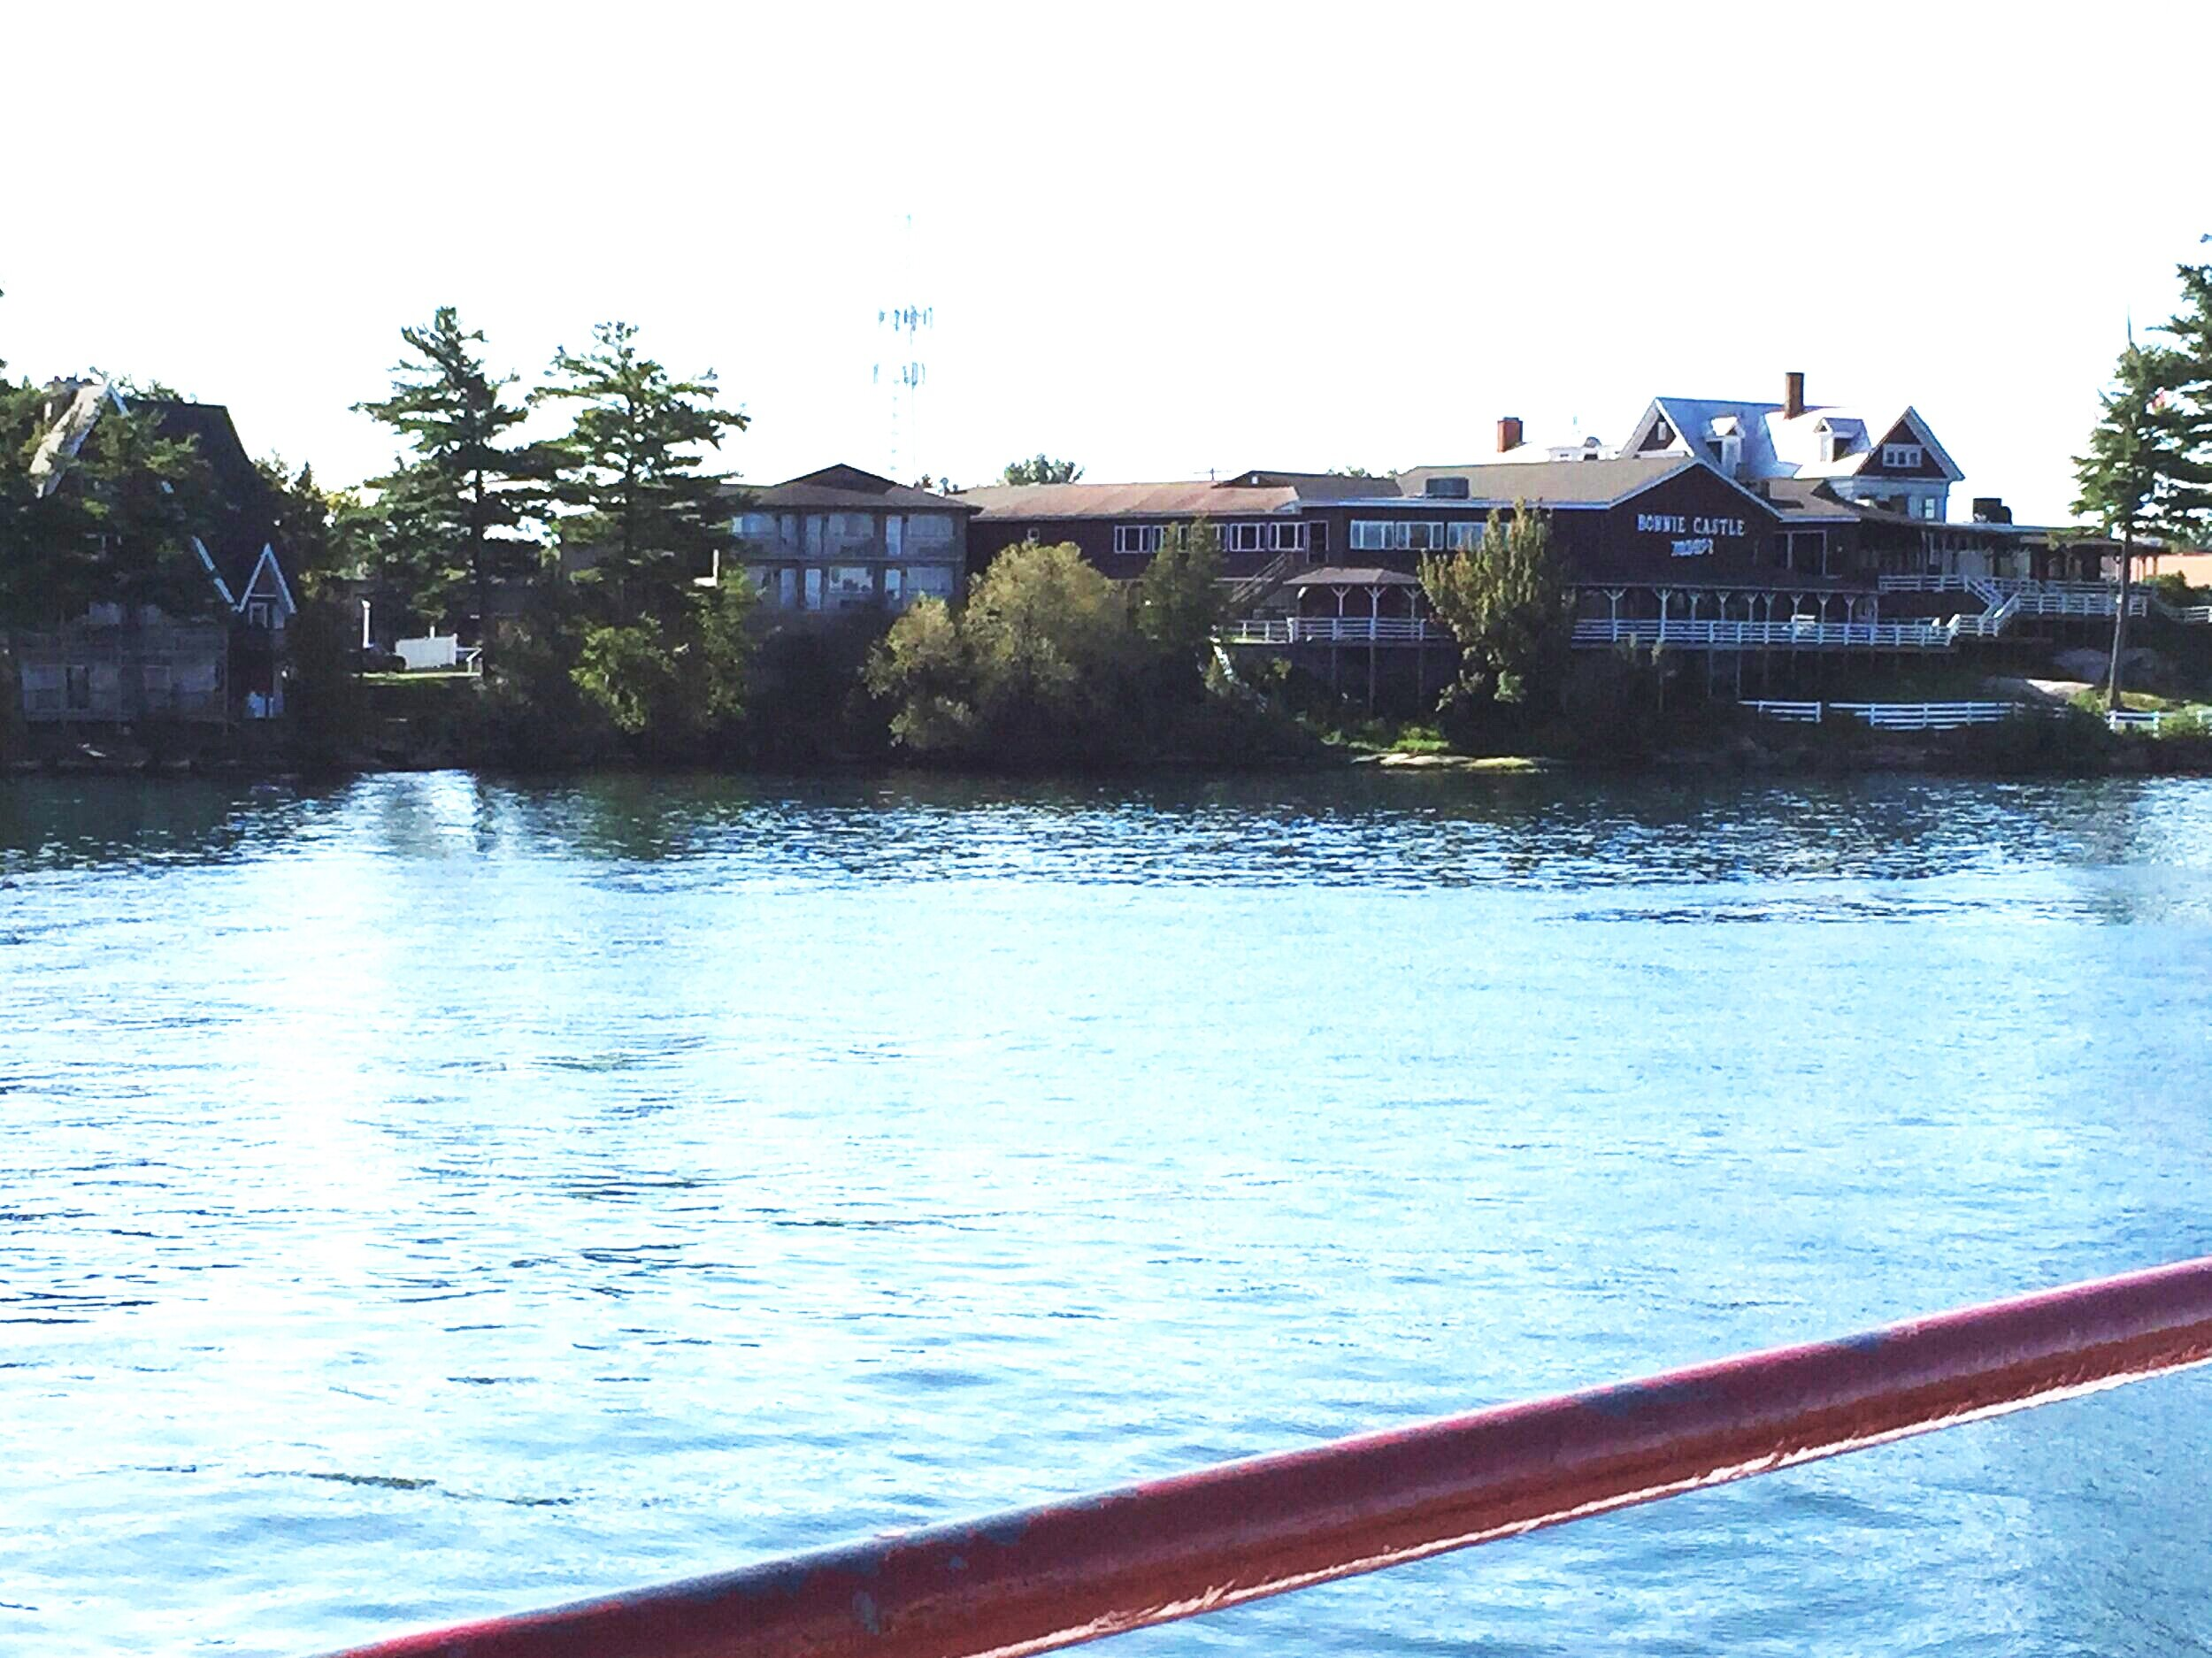 Bonnie Castle resort from the water